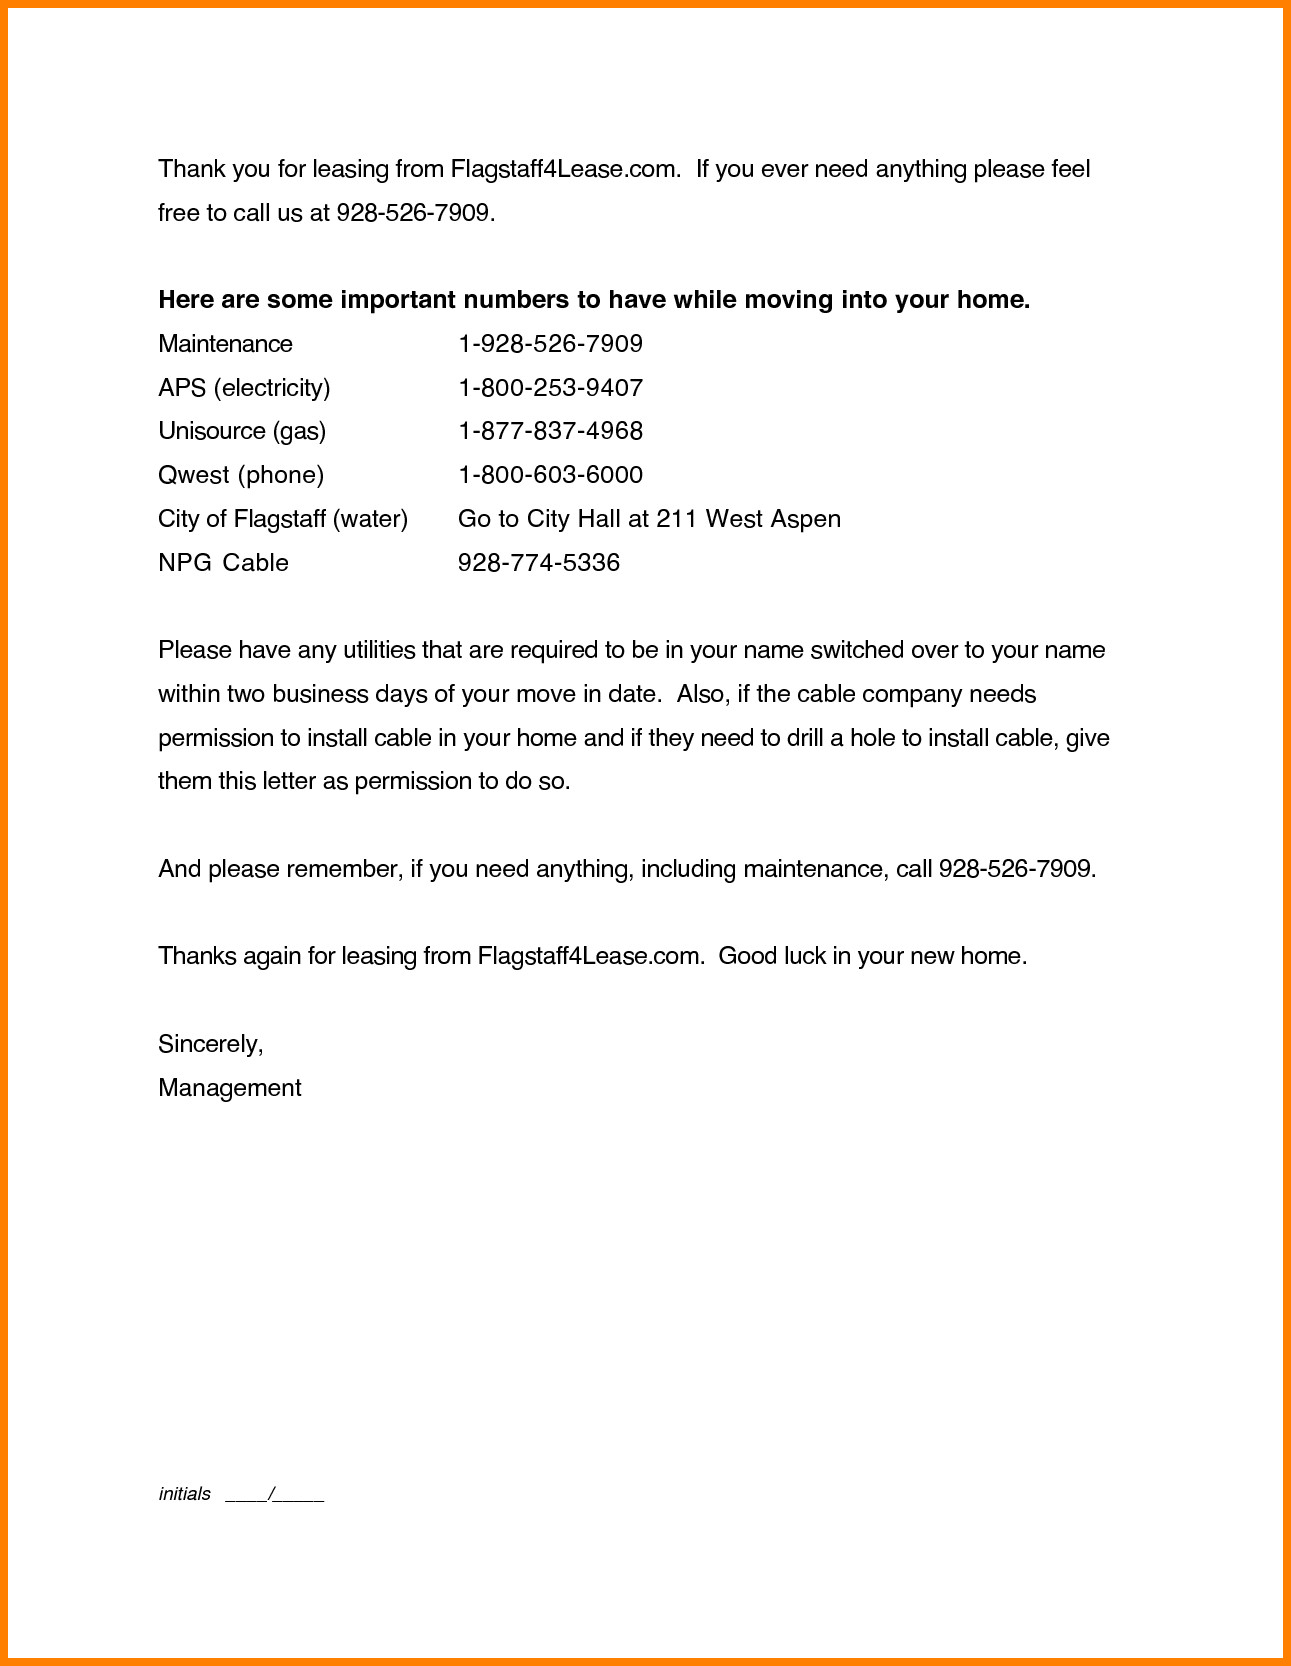 Rental Termination Letter Template - Early Lease Termination Letter to Tenant Sample Fresh top Result 50